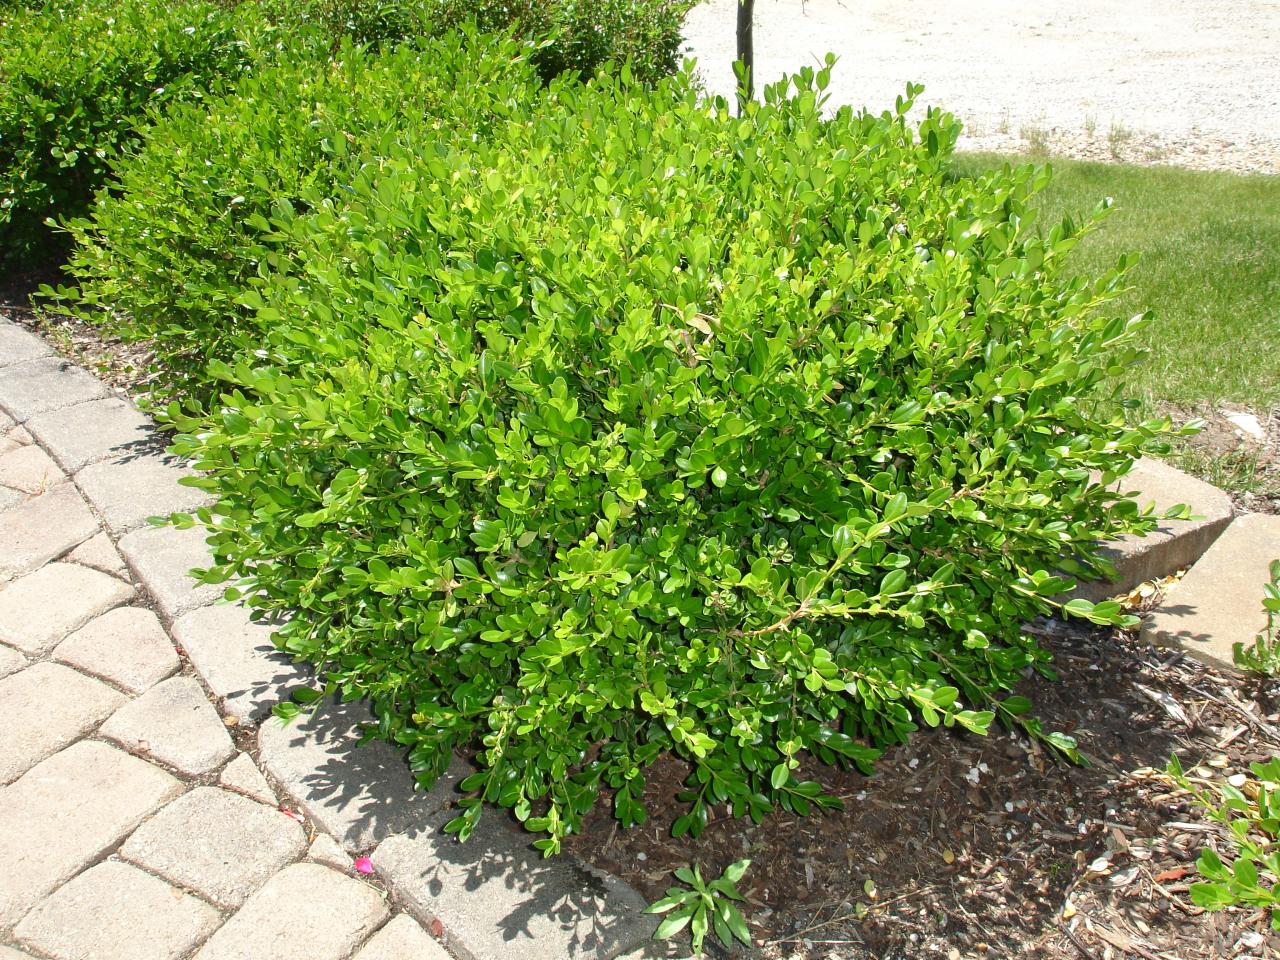 Garden Design With Shrubs : Halligan lawn services popular landscape plants